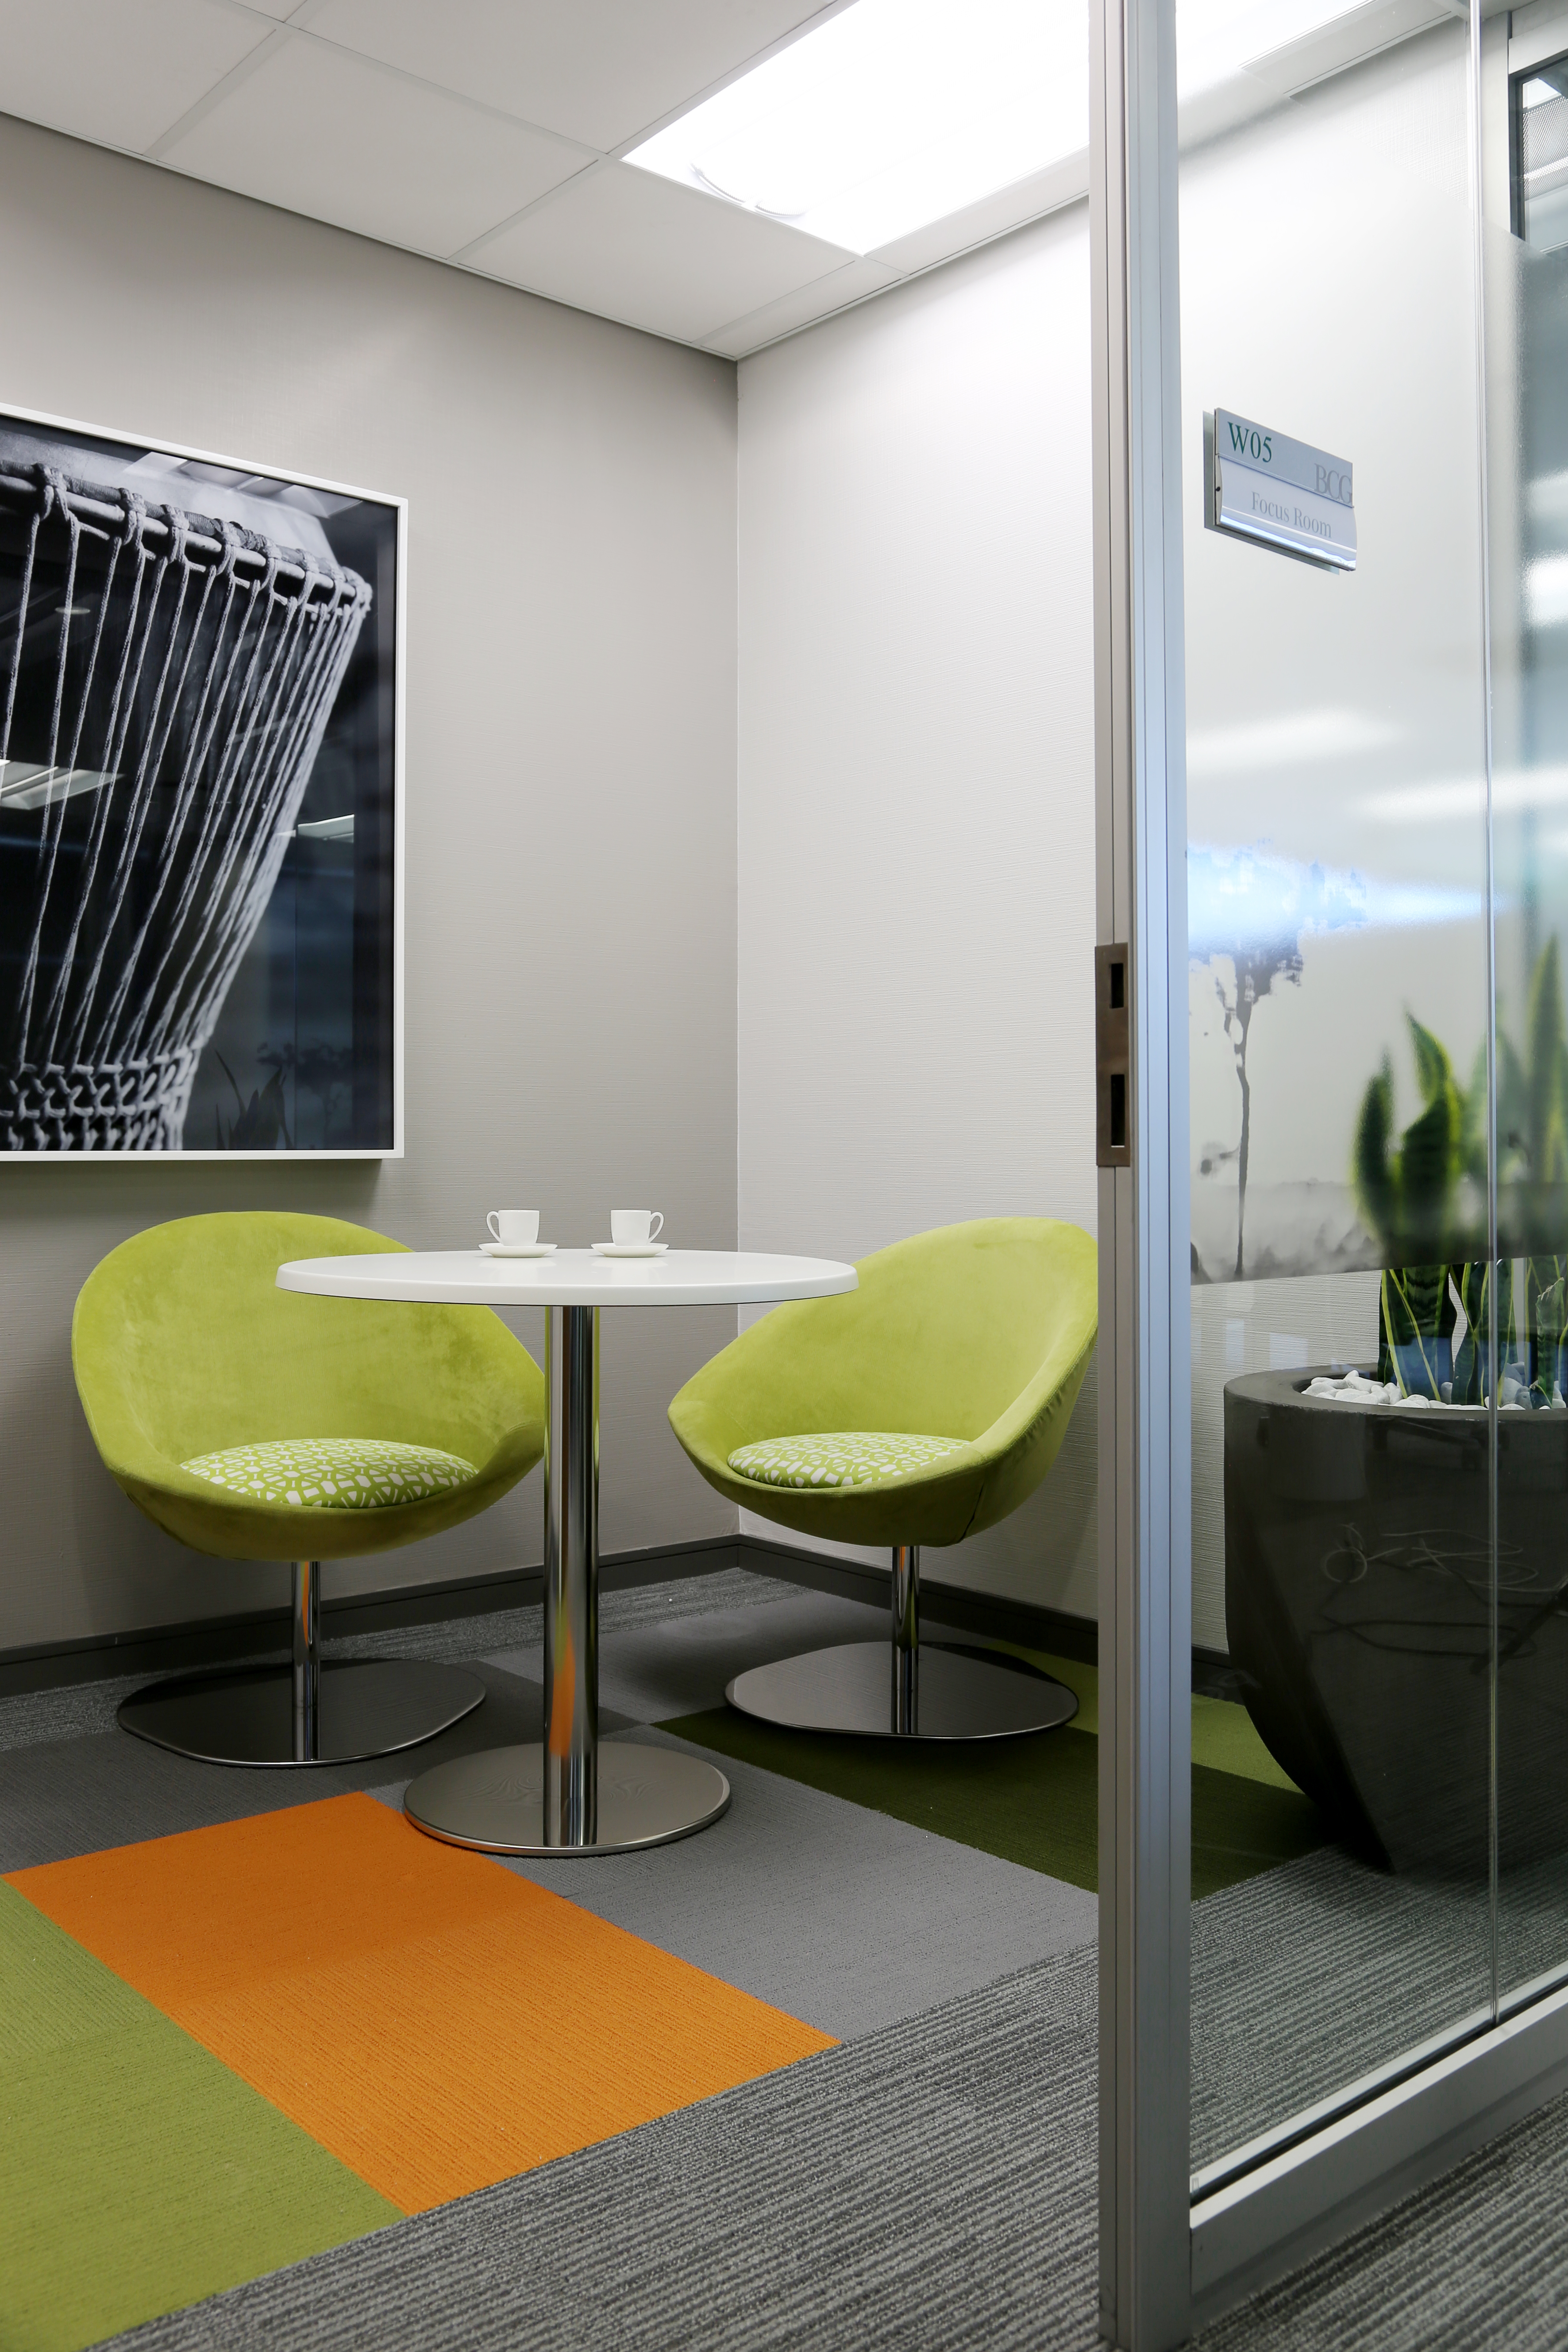 A picture containing indoor, chair, floor, table Description generated with very high confidence